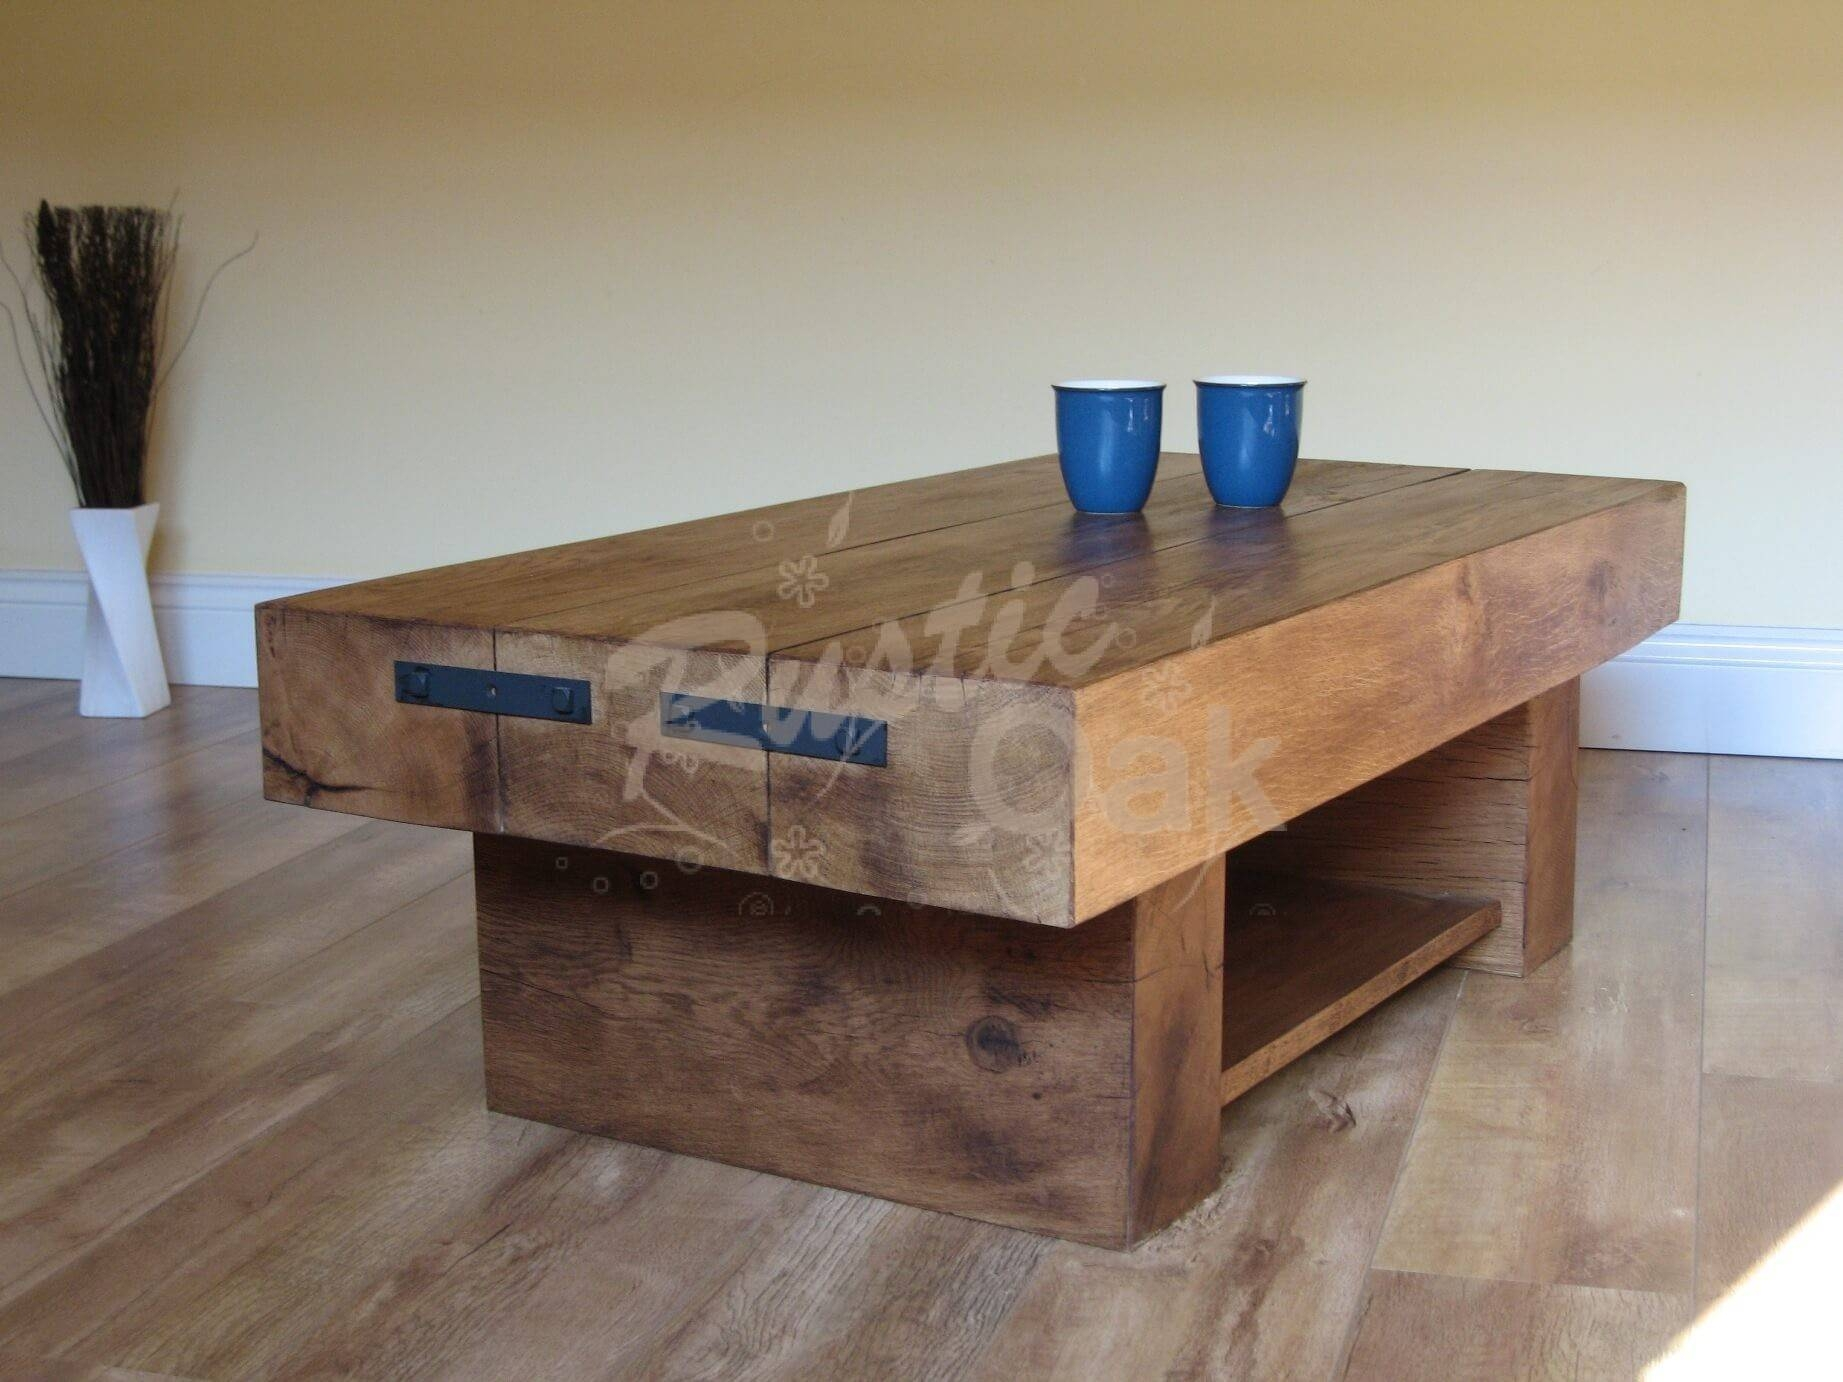 3 Beam Coffee Table With Shelf   Rustic Oak Intended For Oak Beam Coffee Tables (Photo 9 of 15)